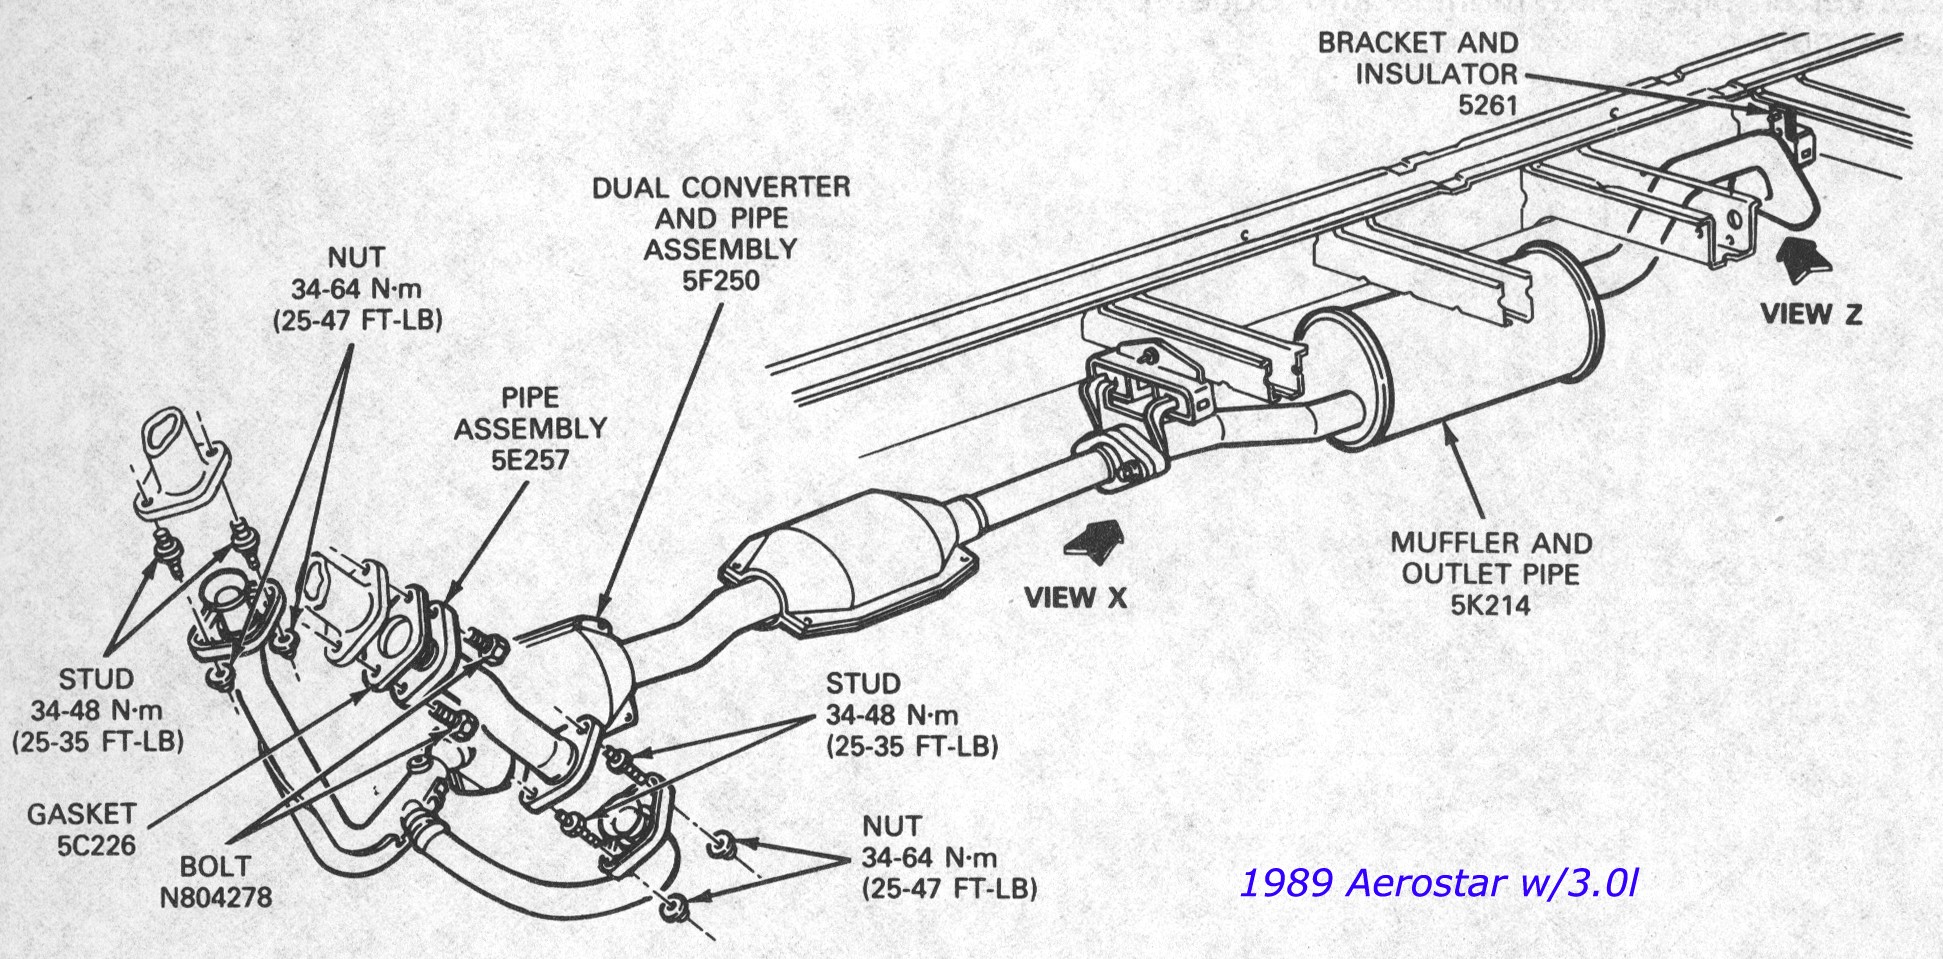 2001 ford taurus exhaust system diagram rockford fosgate punch p200 2 wiring 97 explorer o2 sensor location get free image about